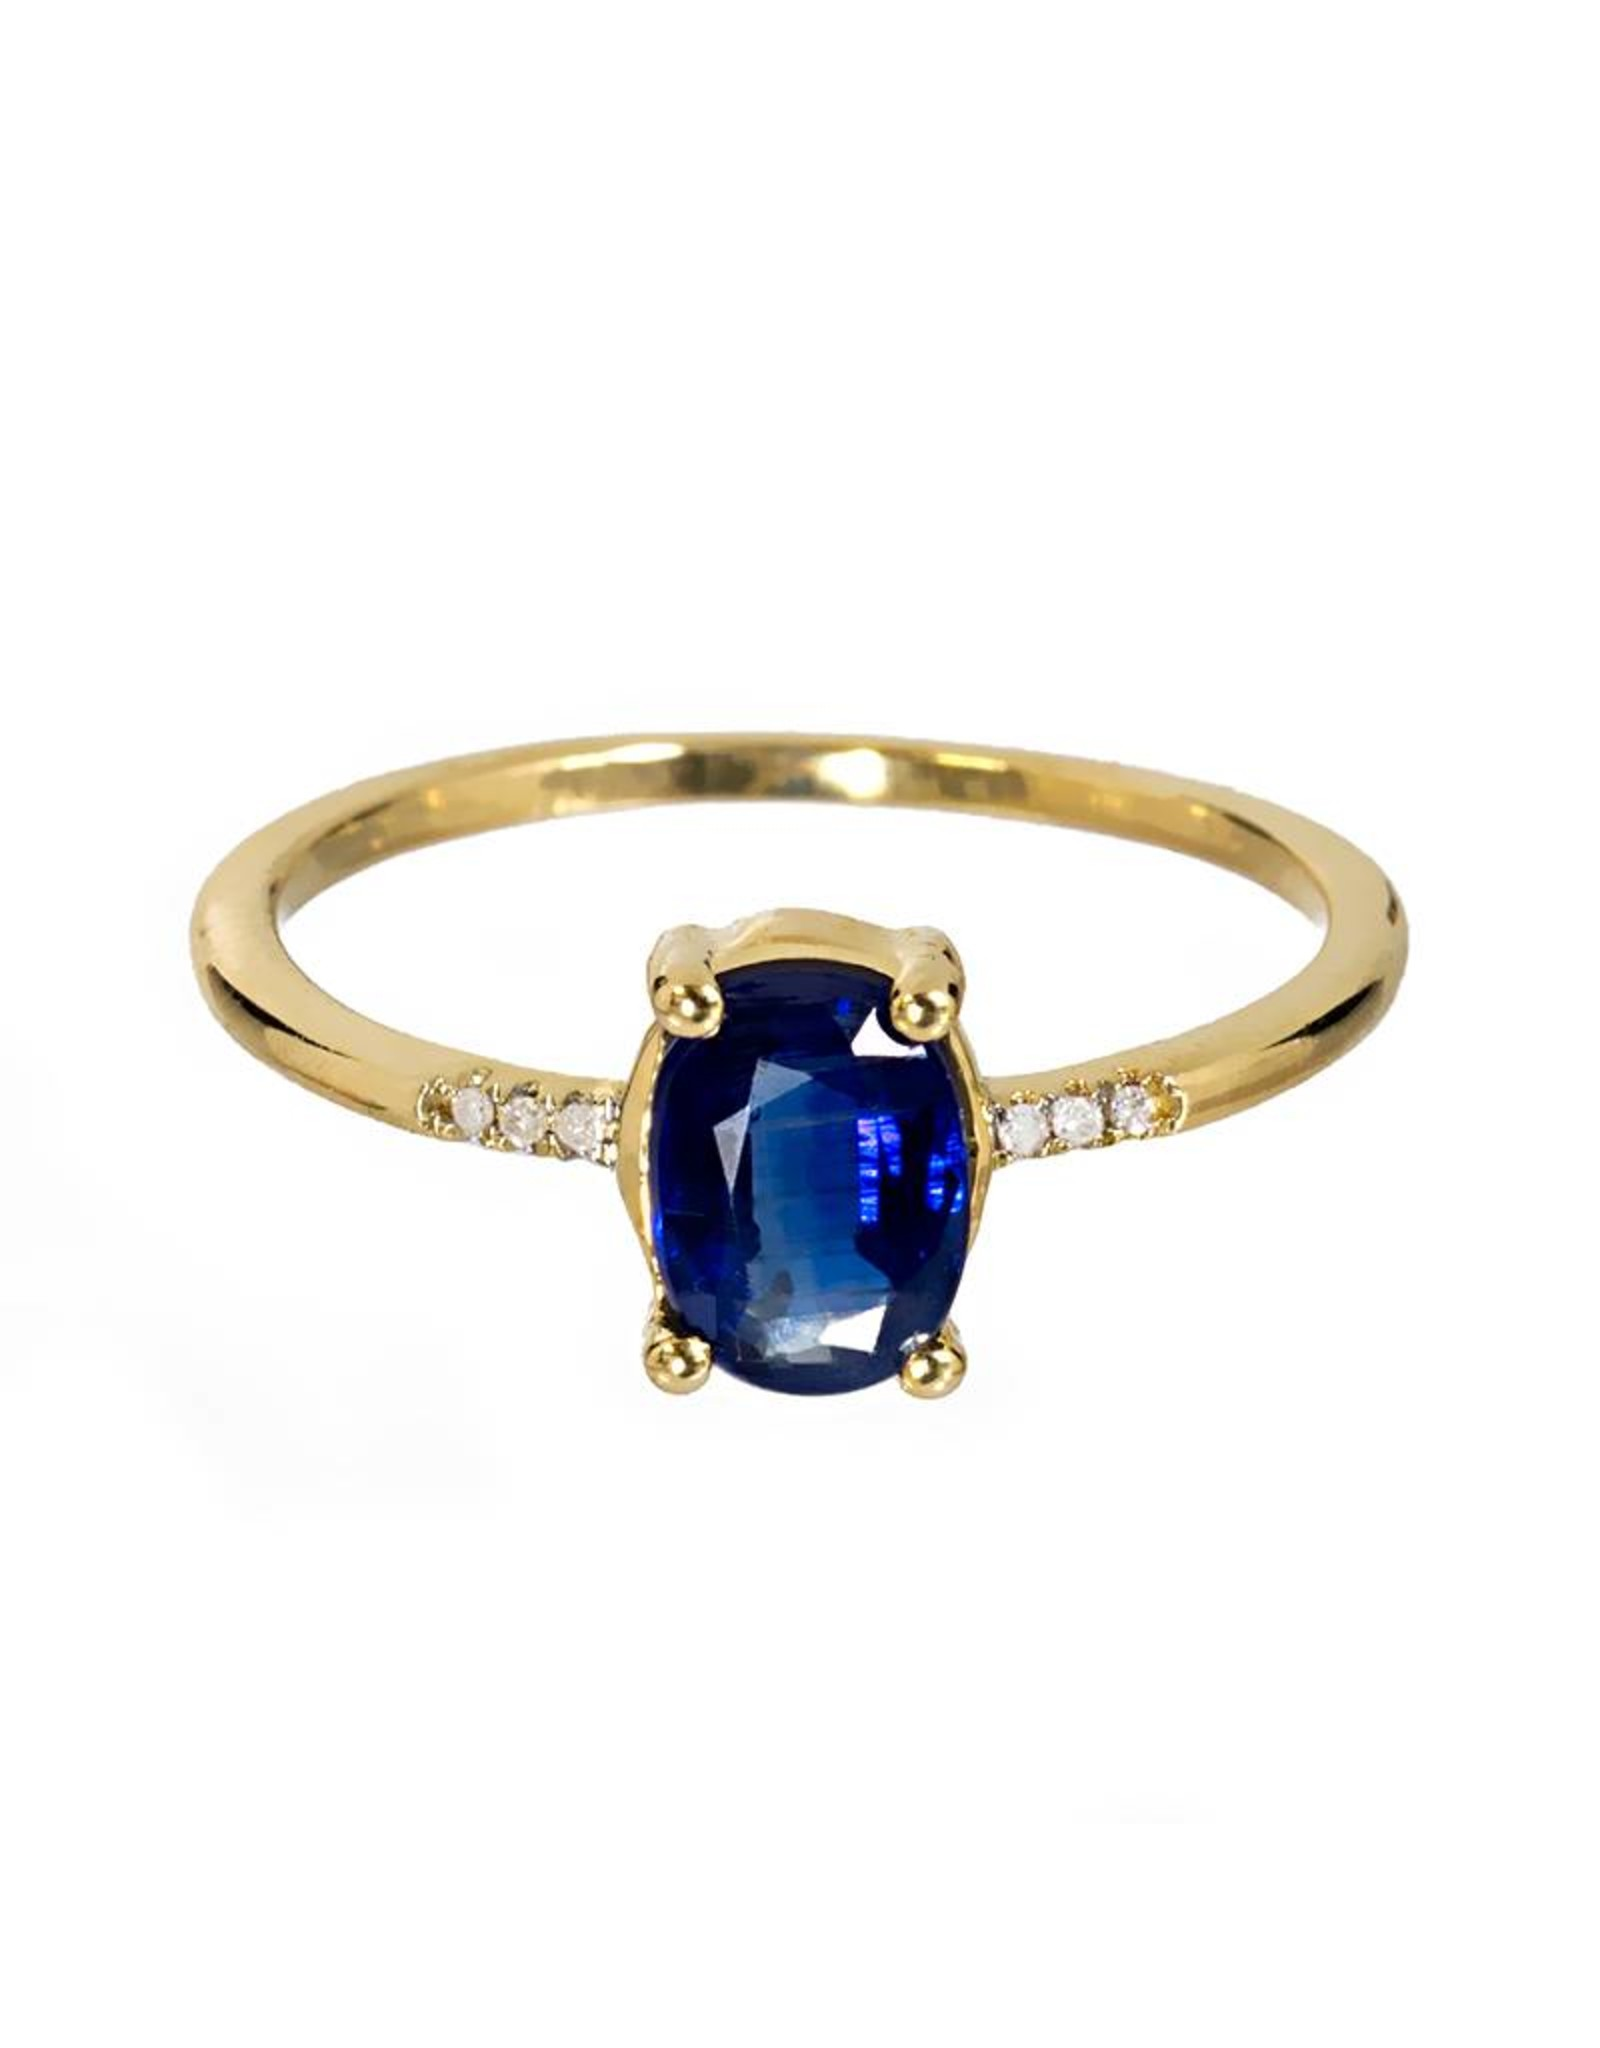 Bo Gold Ring - Goud - Kyaniet - Diamant